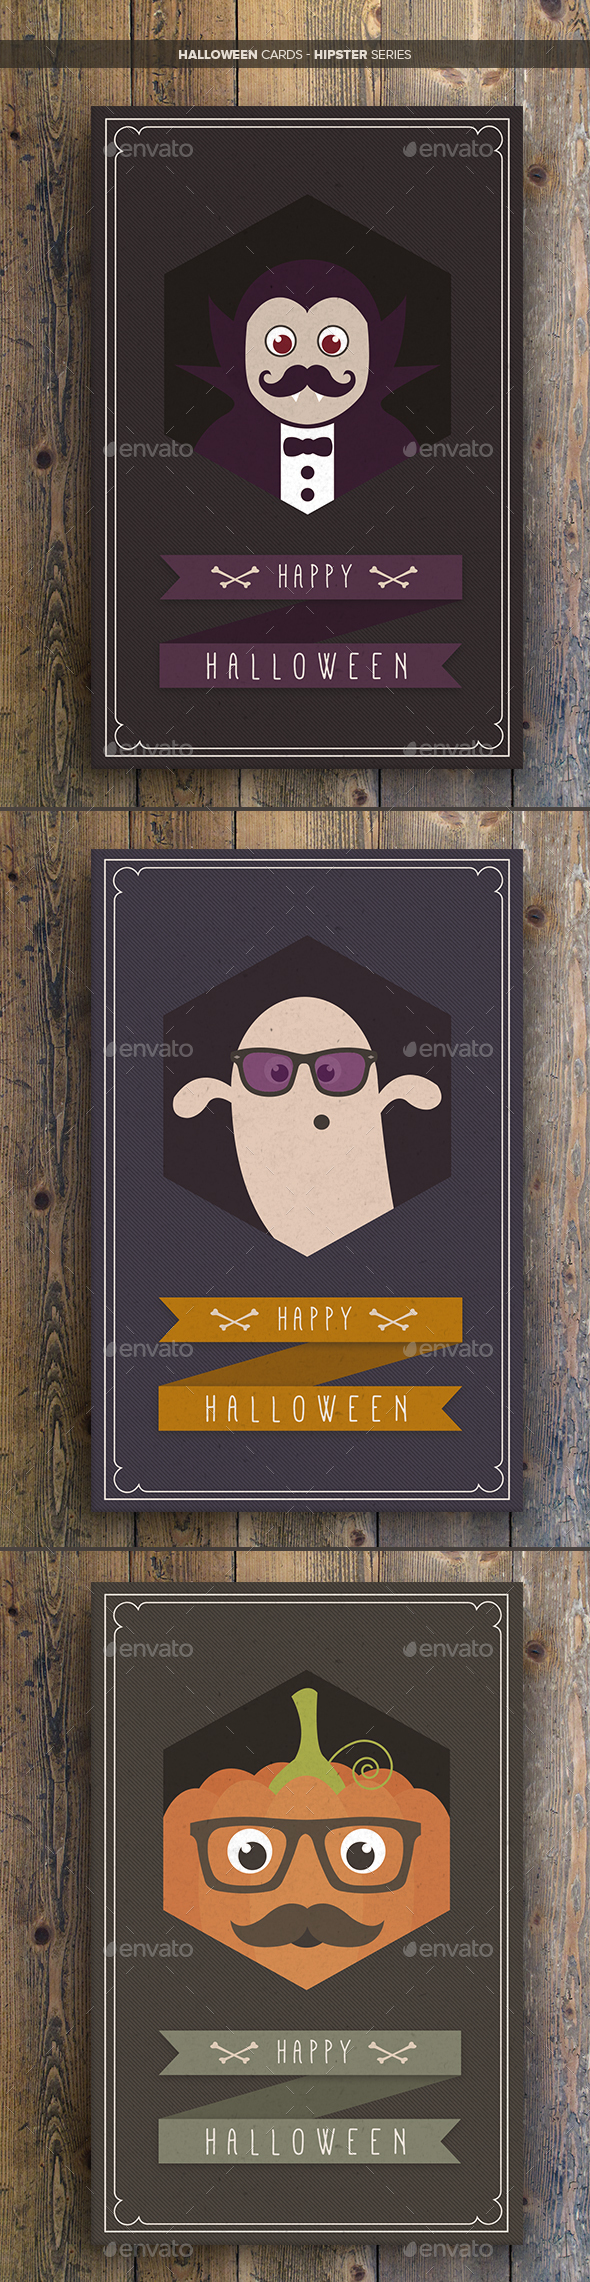 Halloween Cards Hipster Series